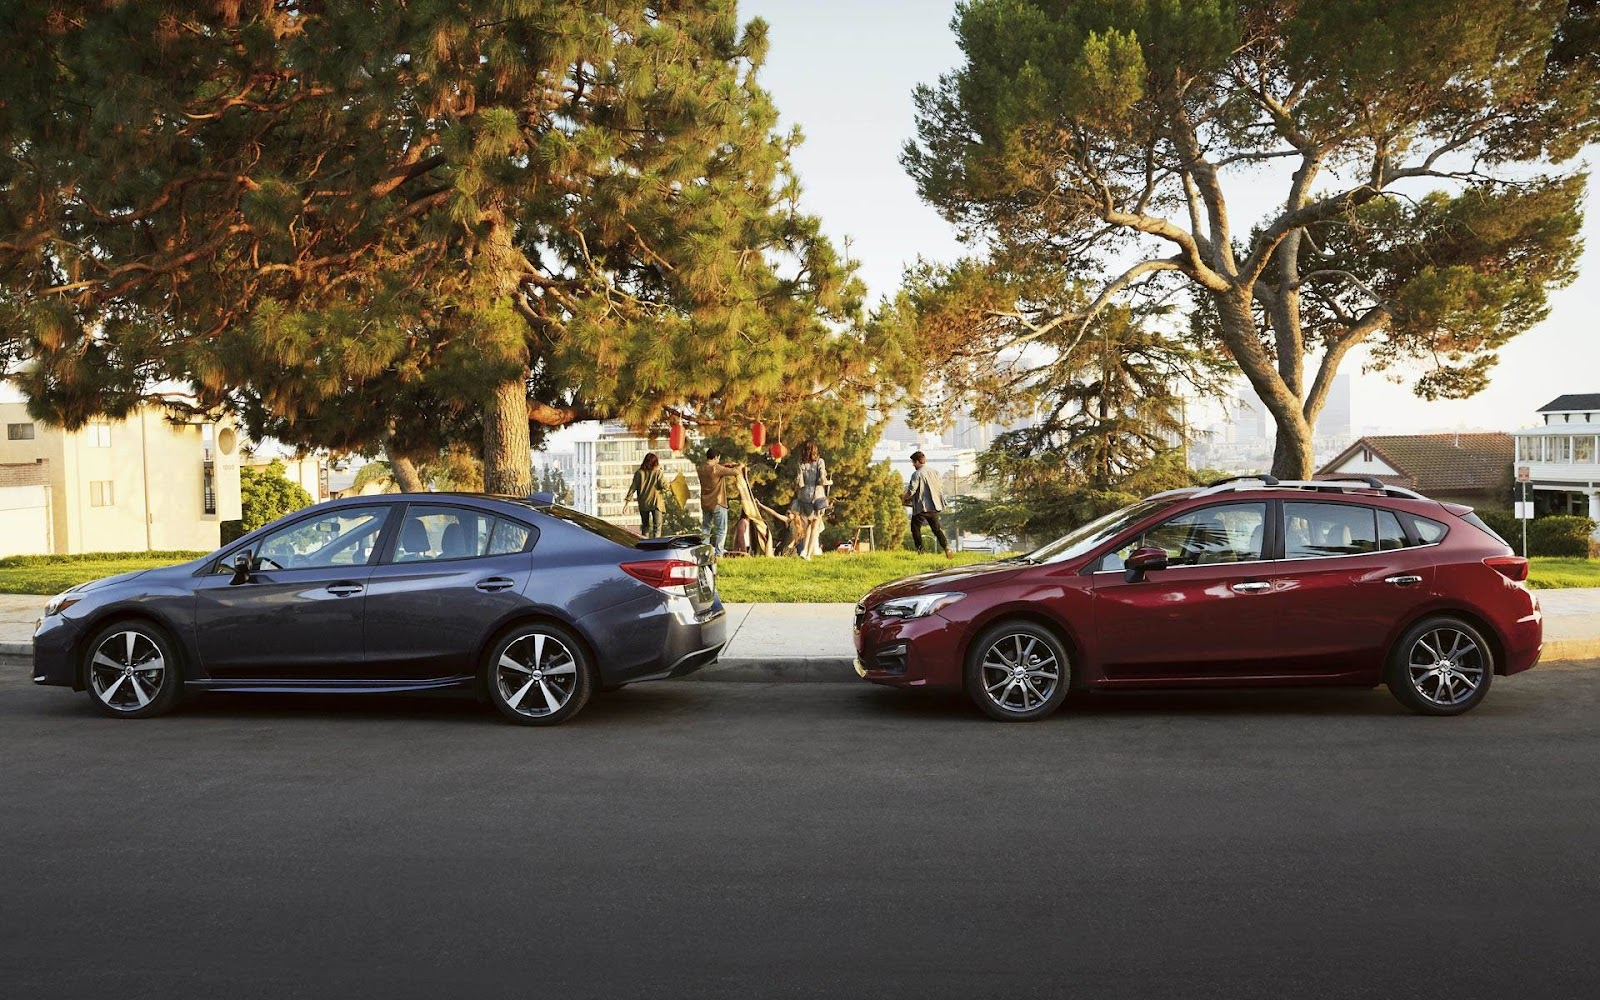 No Matter How Old You Are Or What Phase Of Life Youu0027re In, Thereu0027s A Lot To  Love About The 2017 Subaru Impreza (I Mean Really, Whatu0027s Not To Love?)